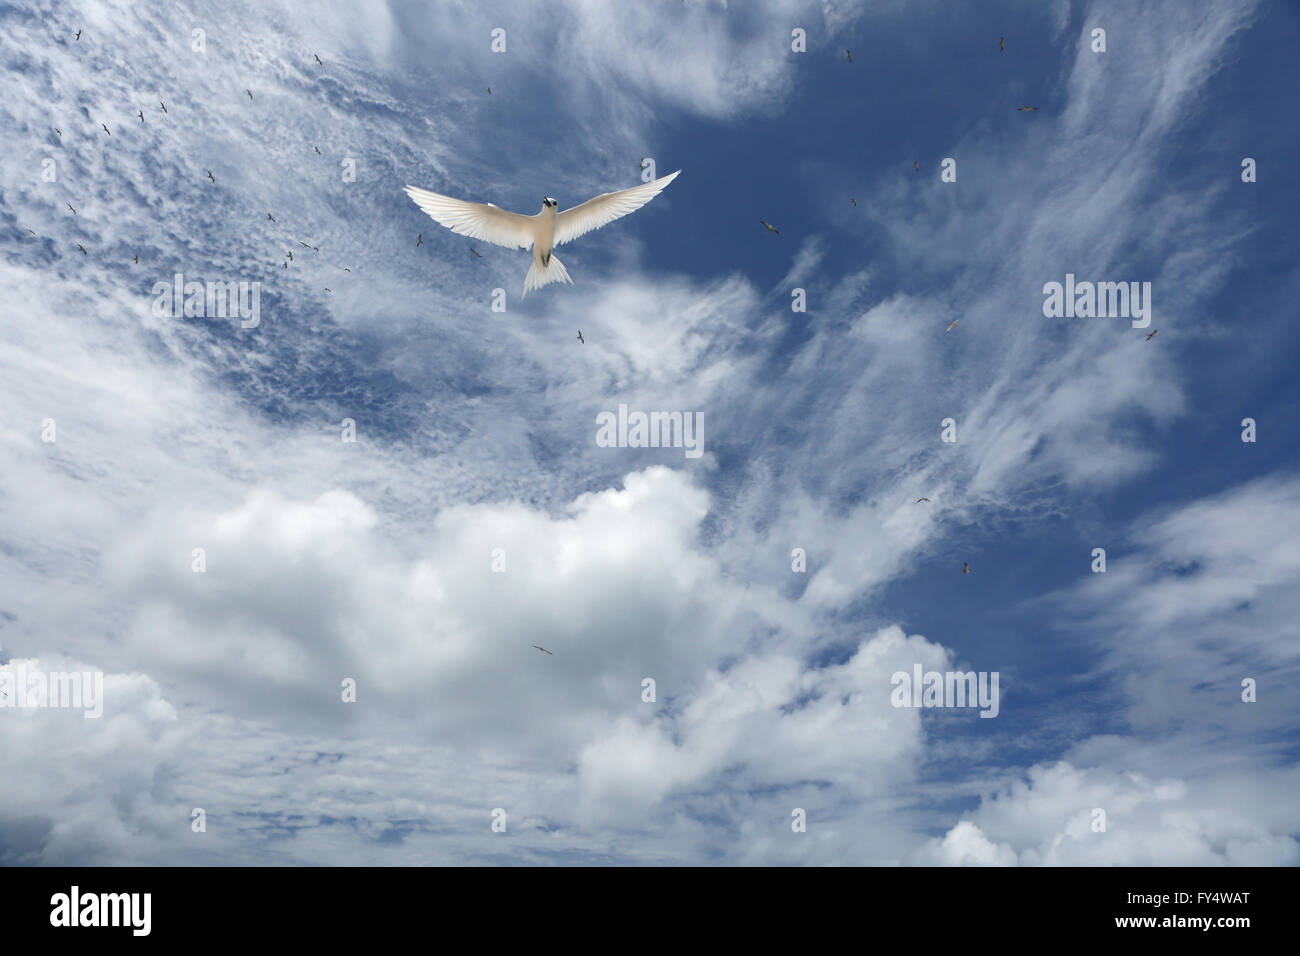 White, fluffy clouds and white fairy tern bird in the blue sky - Stock Image